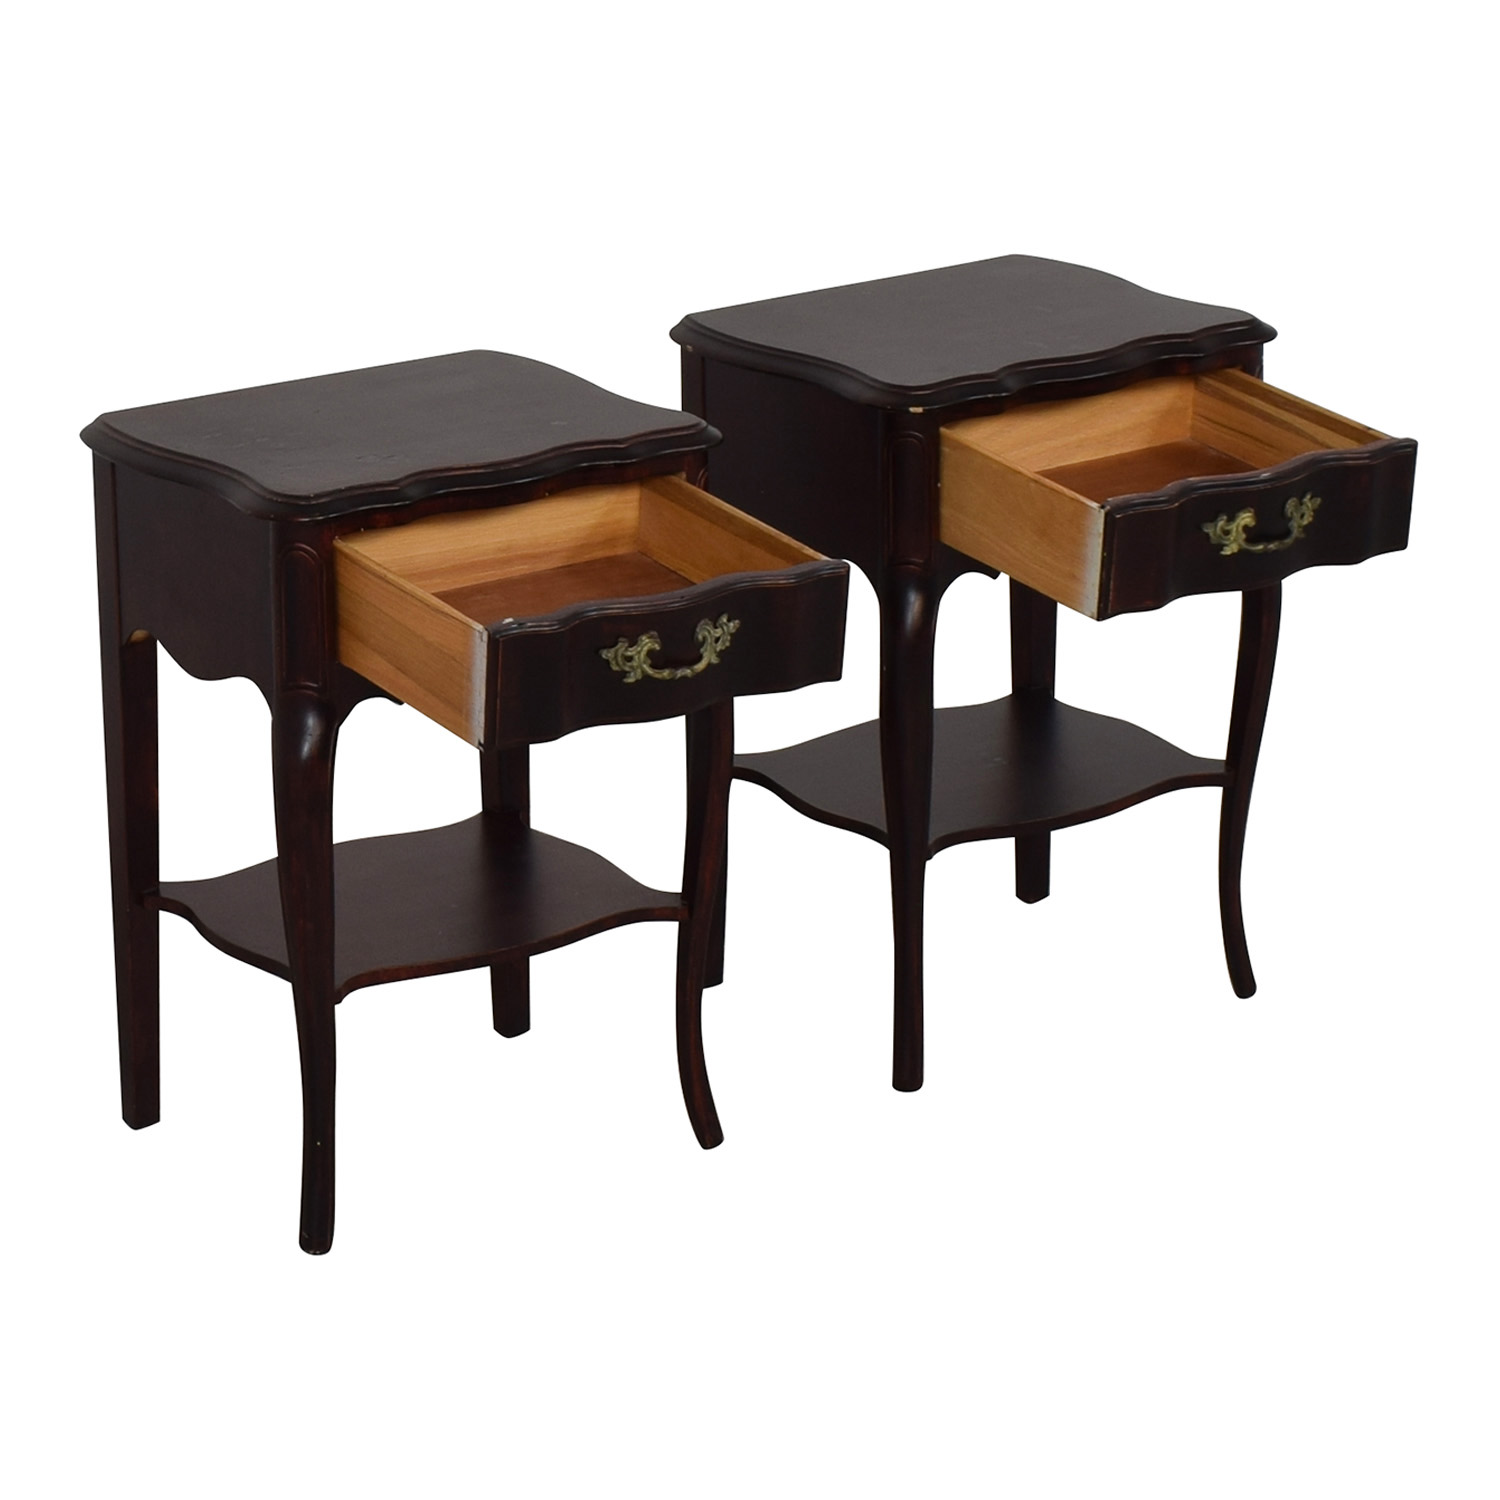 A-America Wood Furniture A-America Wood Furniture Night Stands discount